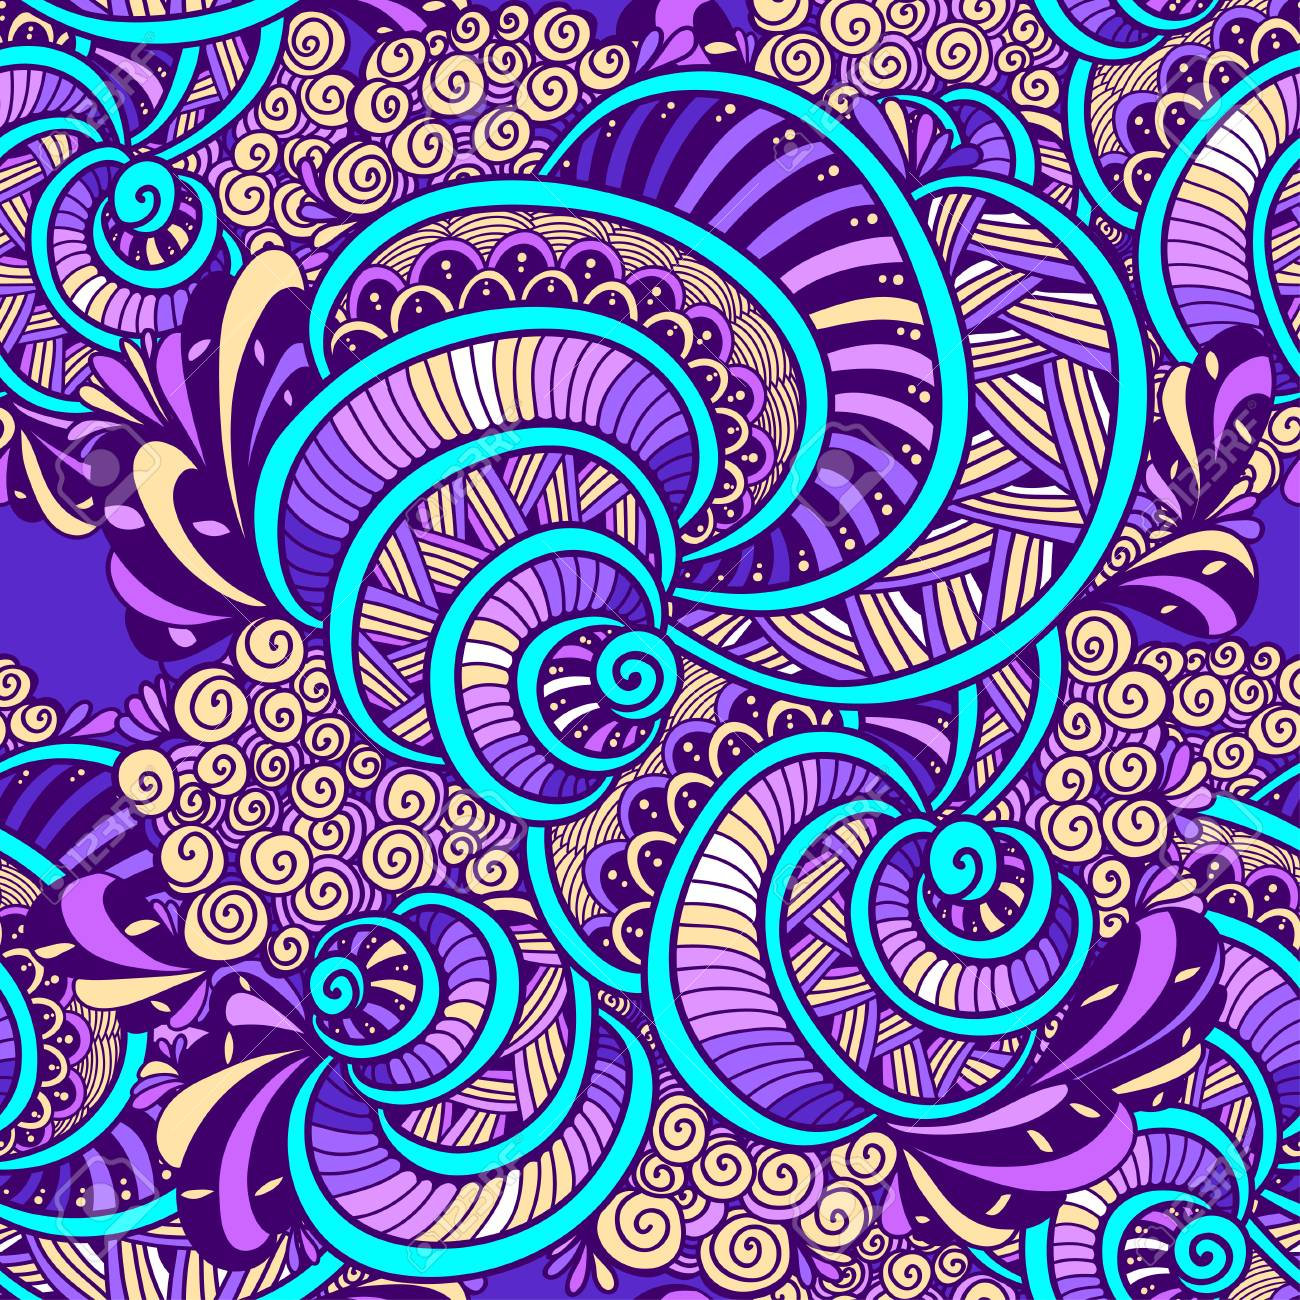 Colorful doodle art design textile illustration